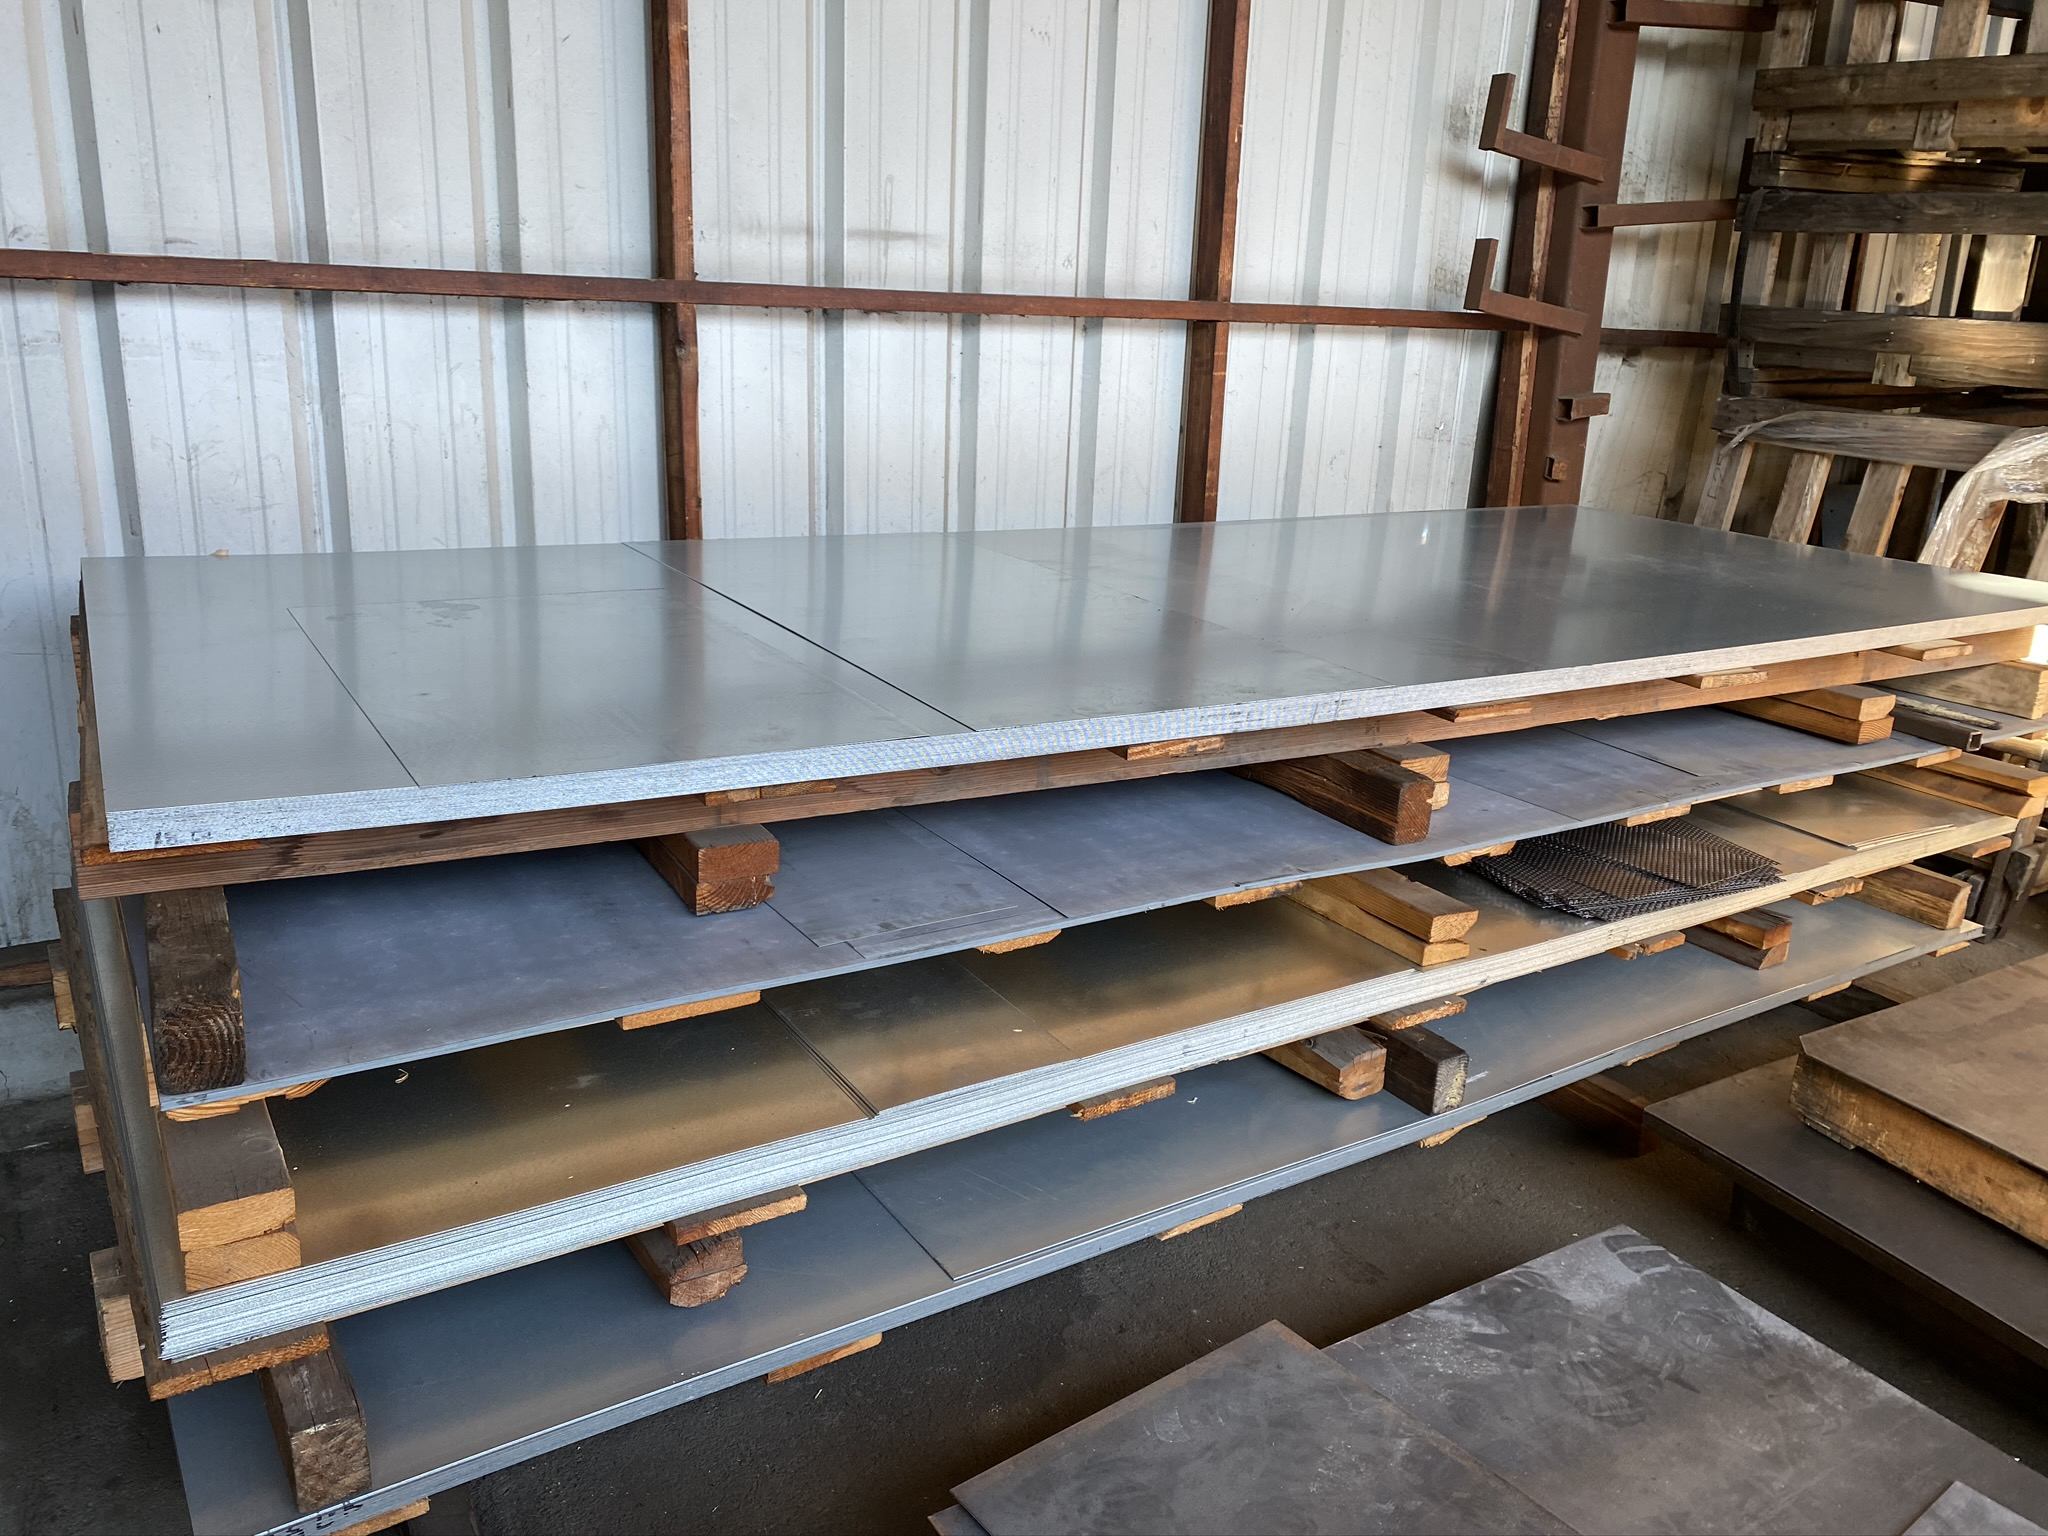 METAL STORE FIXTURE & SHEET METAL FABRICATION FACILITY, - Image 68 of 71